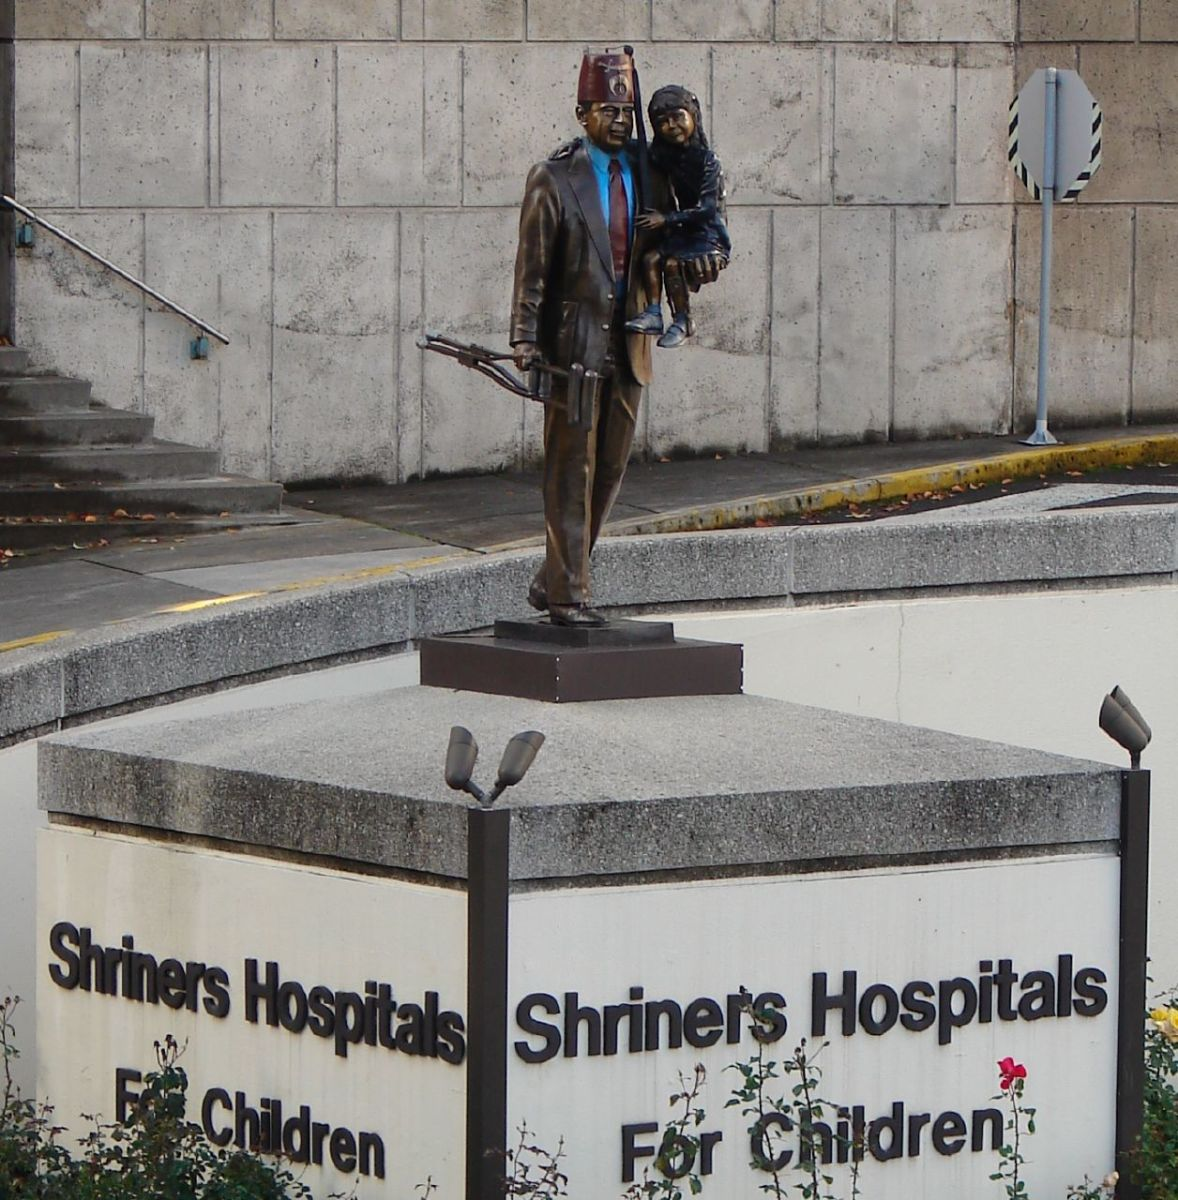 My Patient Experience at the Shriner's Hospital